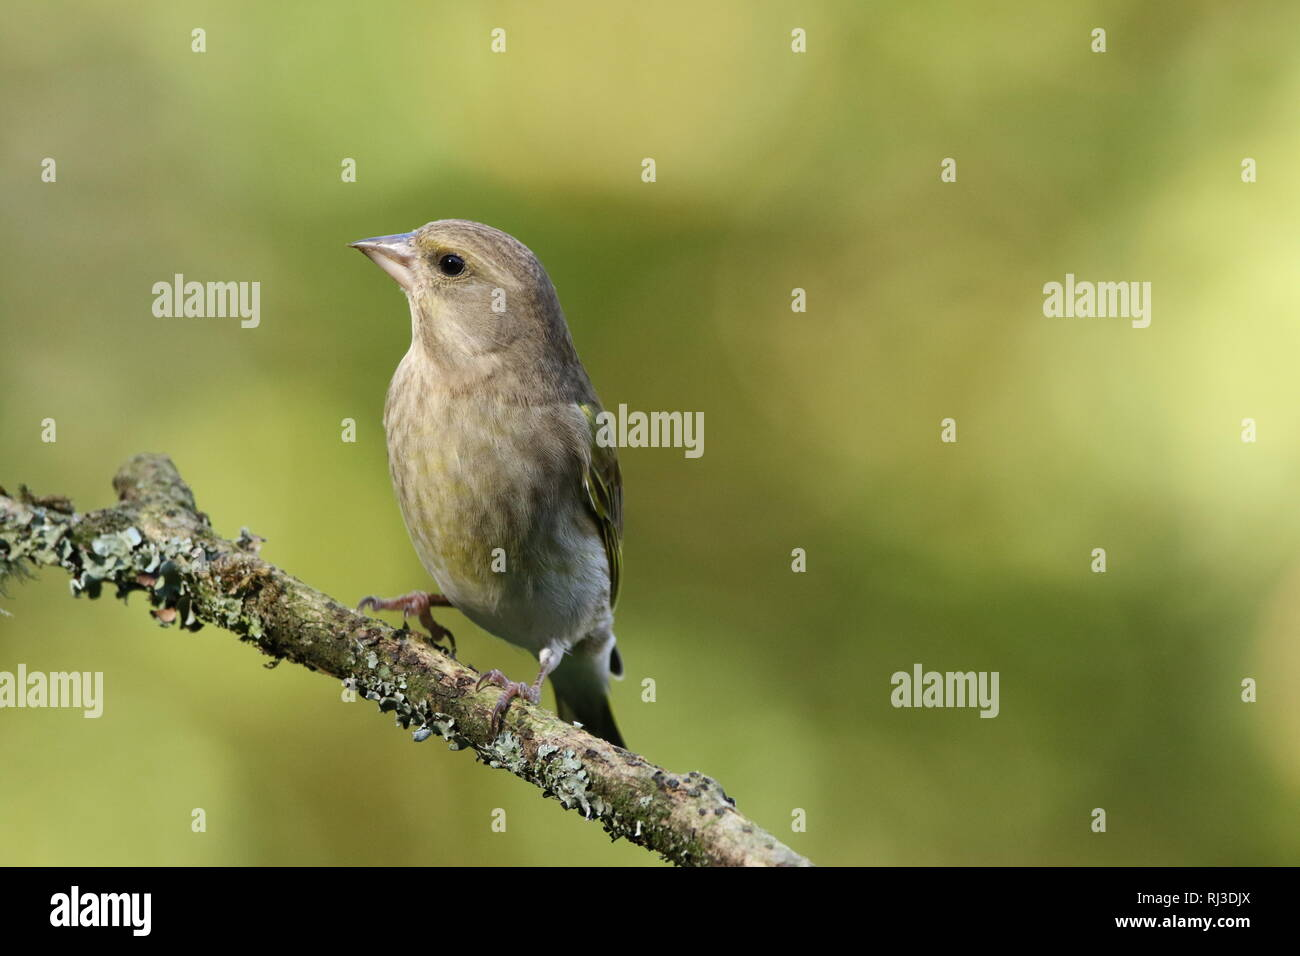 Female European Greenfinch (Chloris chloris) perched in autumn woodland, showing plumage. 29th October 2018. - Stock Image